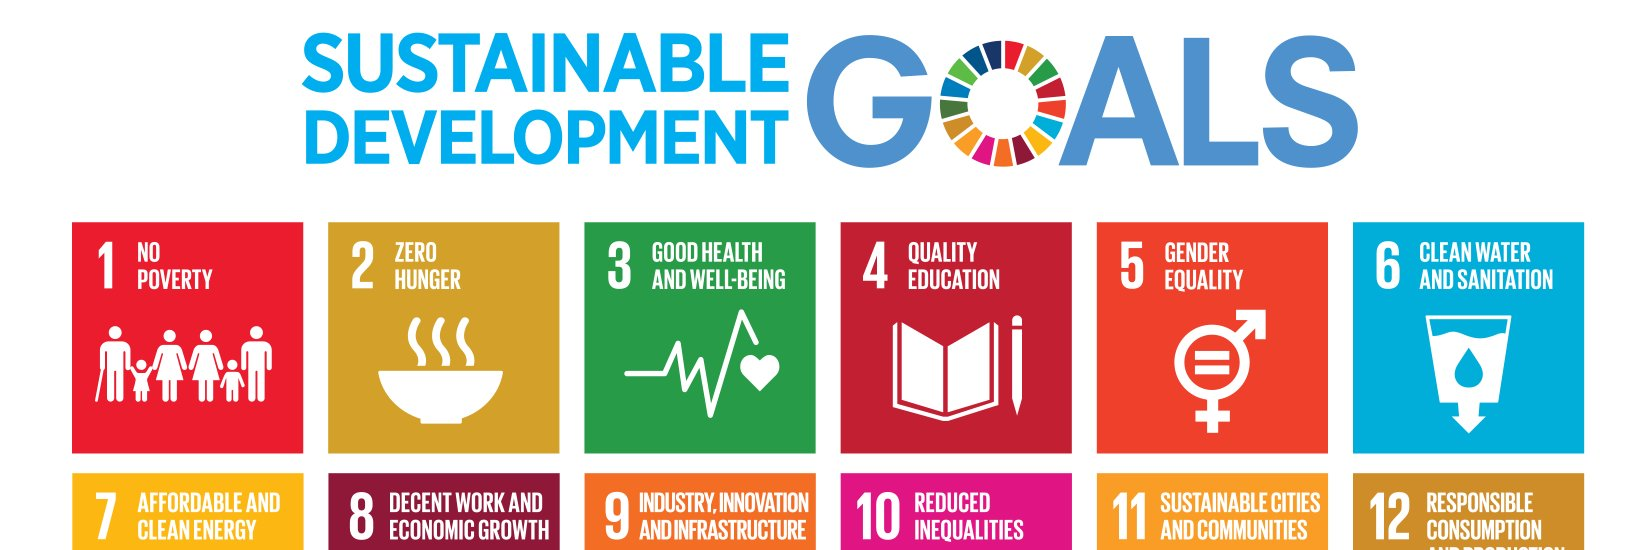 Inspired by ideas of young when running sessions on #GlobalGoals w/ Stockcross Primary+ Welford & Wickham Primary S… https://t.co/EFbCbEmn1E